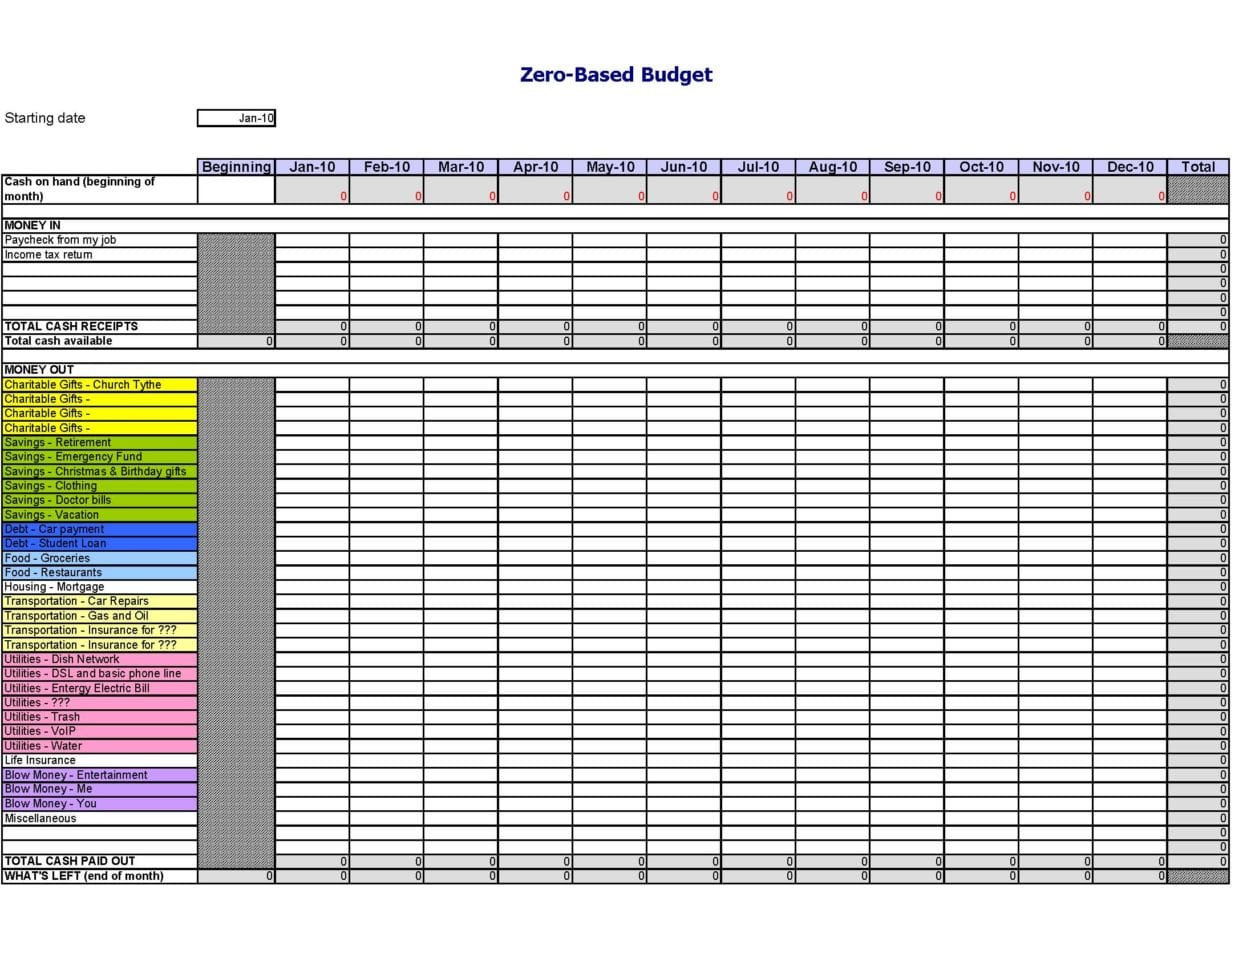 Financial Spreadsheet Printable Running Budget Template Credit Card Spreadsheet Template Personal Investment Plan Template Free Spreadsheet For Windows 10 Free Personal Finance Spreadsheet Template Best Personal Finance Spreadsheet  Finance Spreadsheet Template Free Personal Finance Spreadsheet Template Spreadsheet Templates for Busines